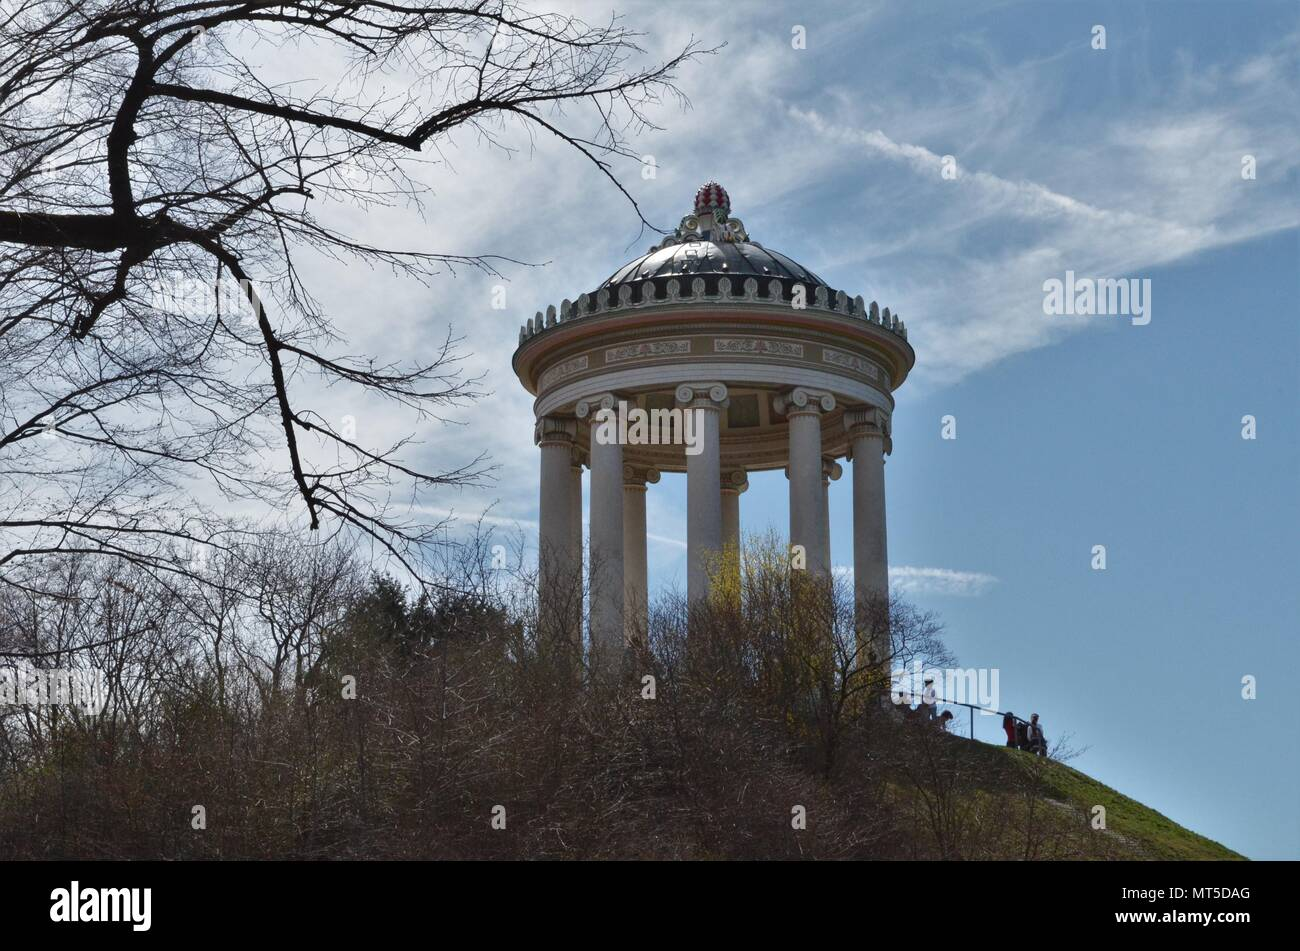 Monopteros in English gardens in Munich in Germany on a good day with blue sky - Stock Image